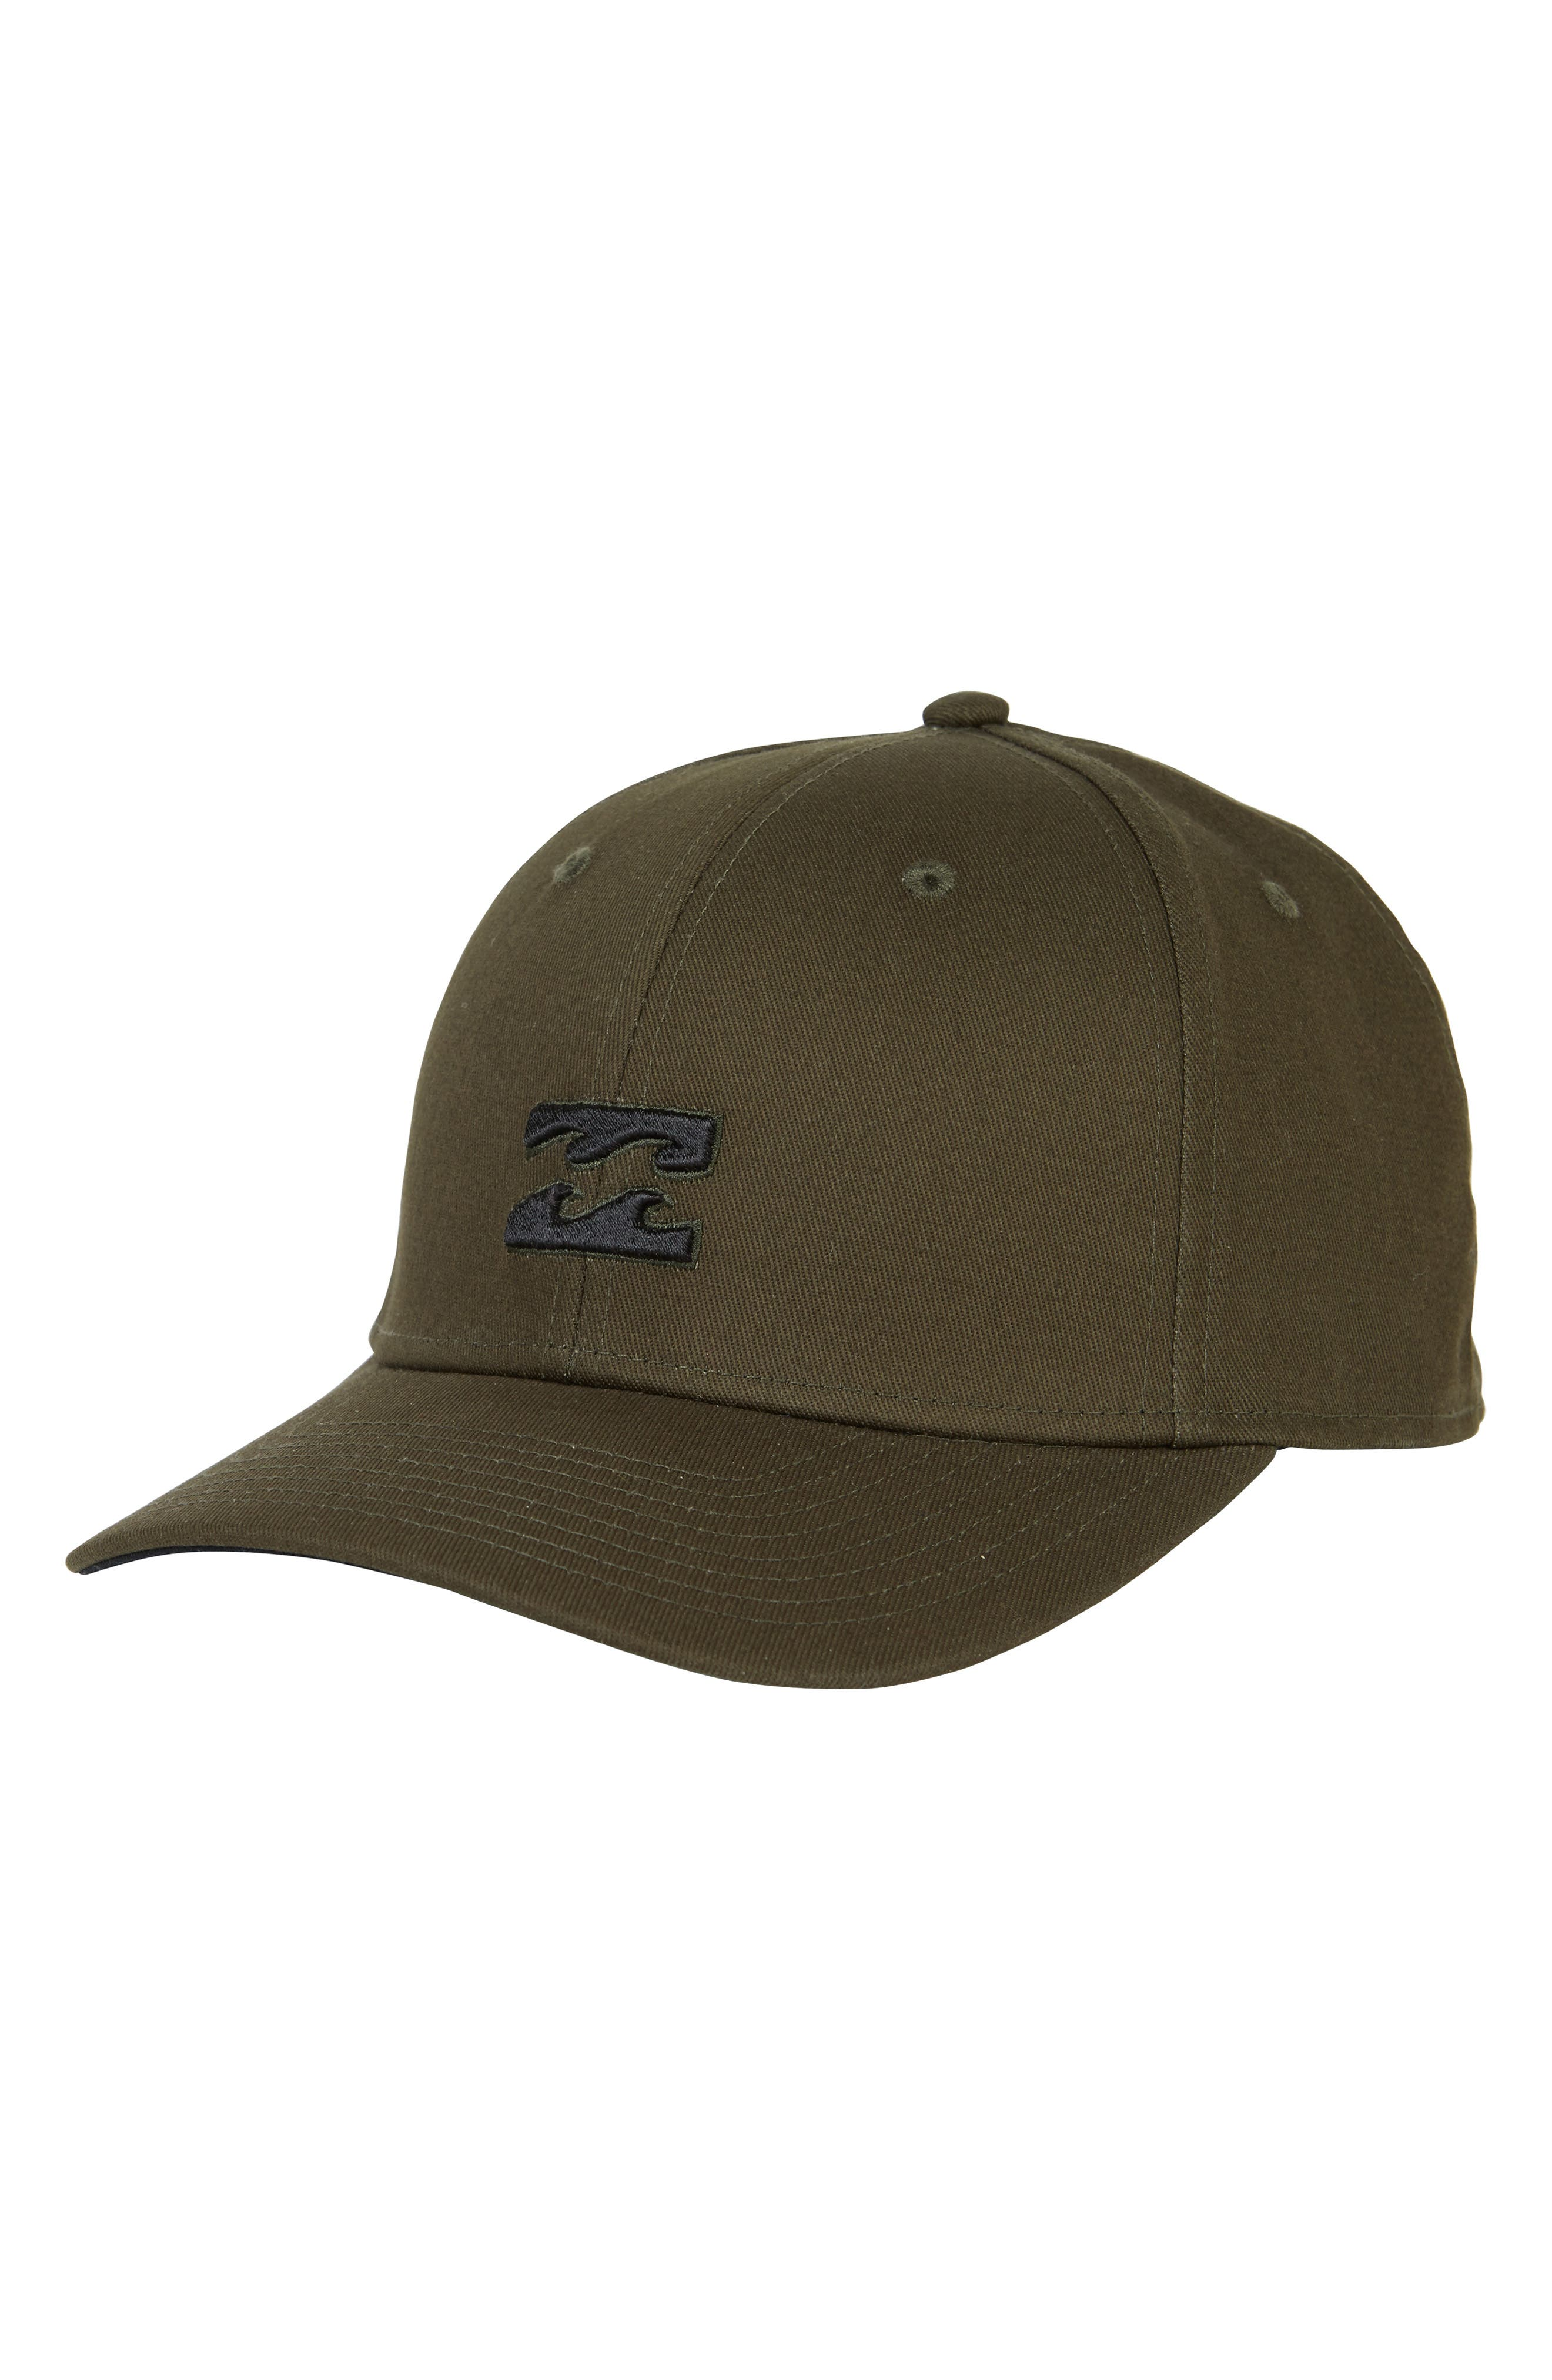 All Day Stretch Baseball Cap,                             Main thumbnail 1, color,                             OLIVE